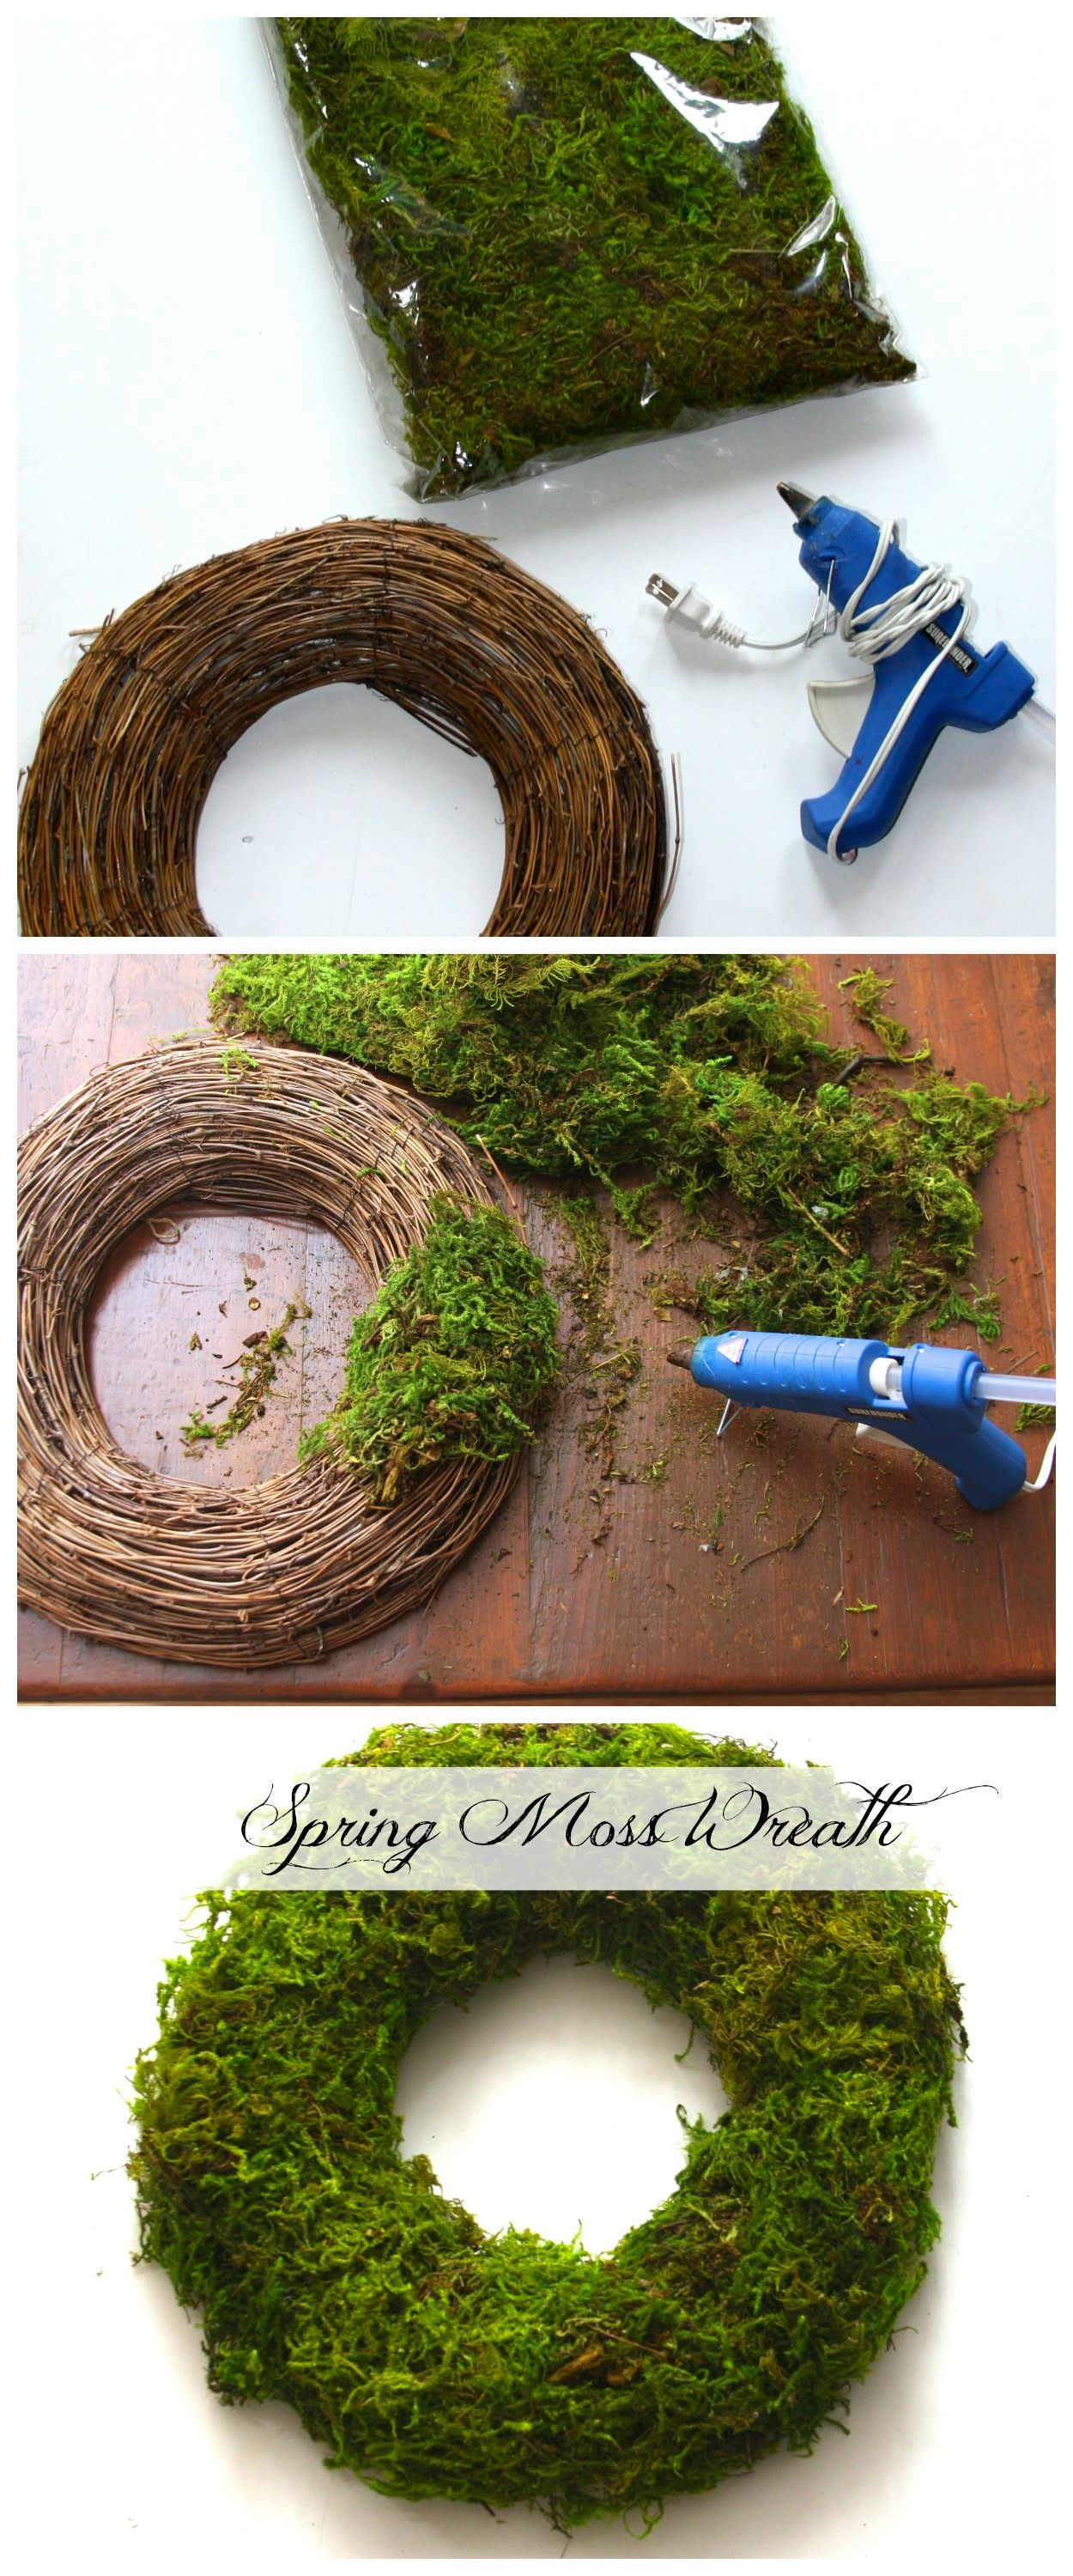 How to make a Moss Wreath. Spring Moss Easter Wreath. | Wreaths ...